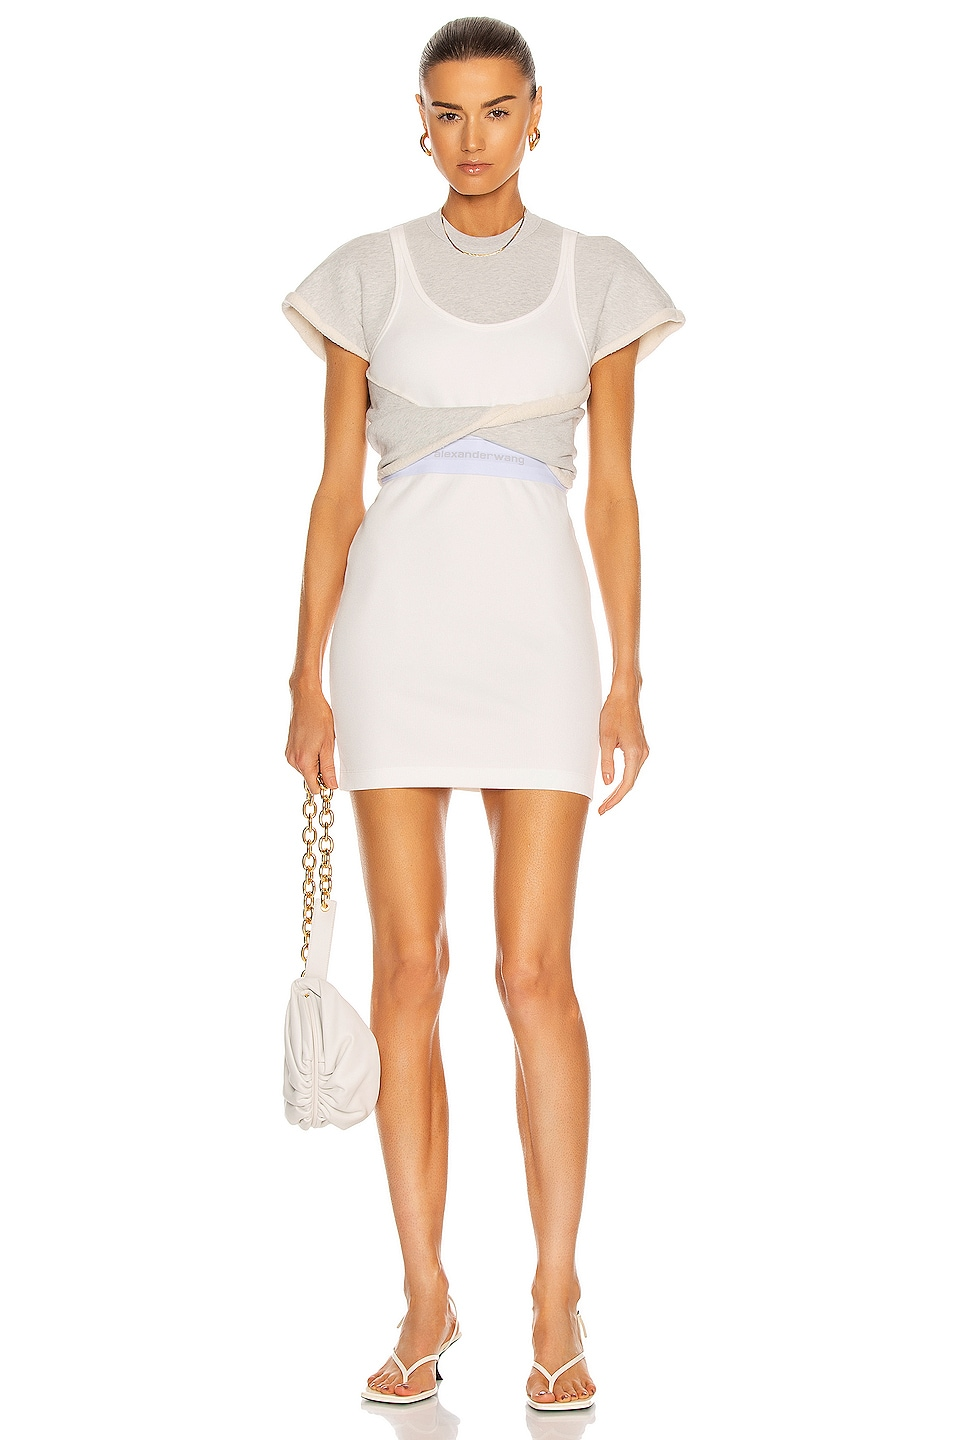 Image 1 of T by Alexander Wang Twisted Hybrid Tank Sweatshirt Dress in Grey & Natural